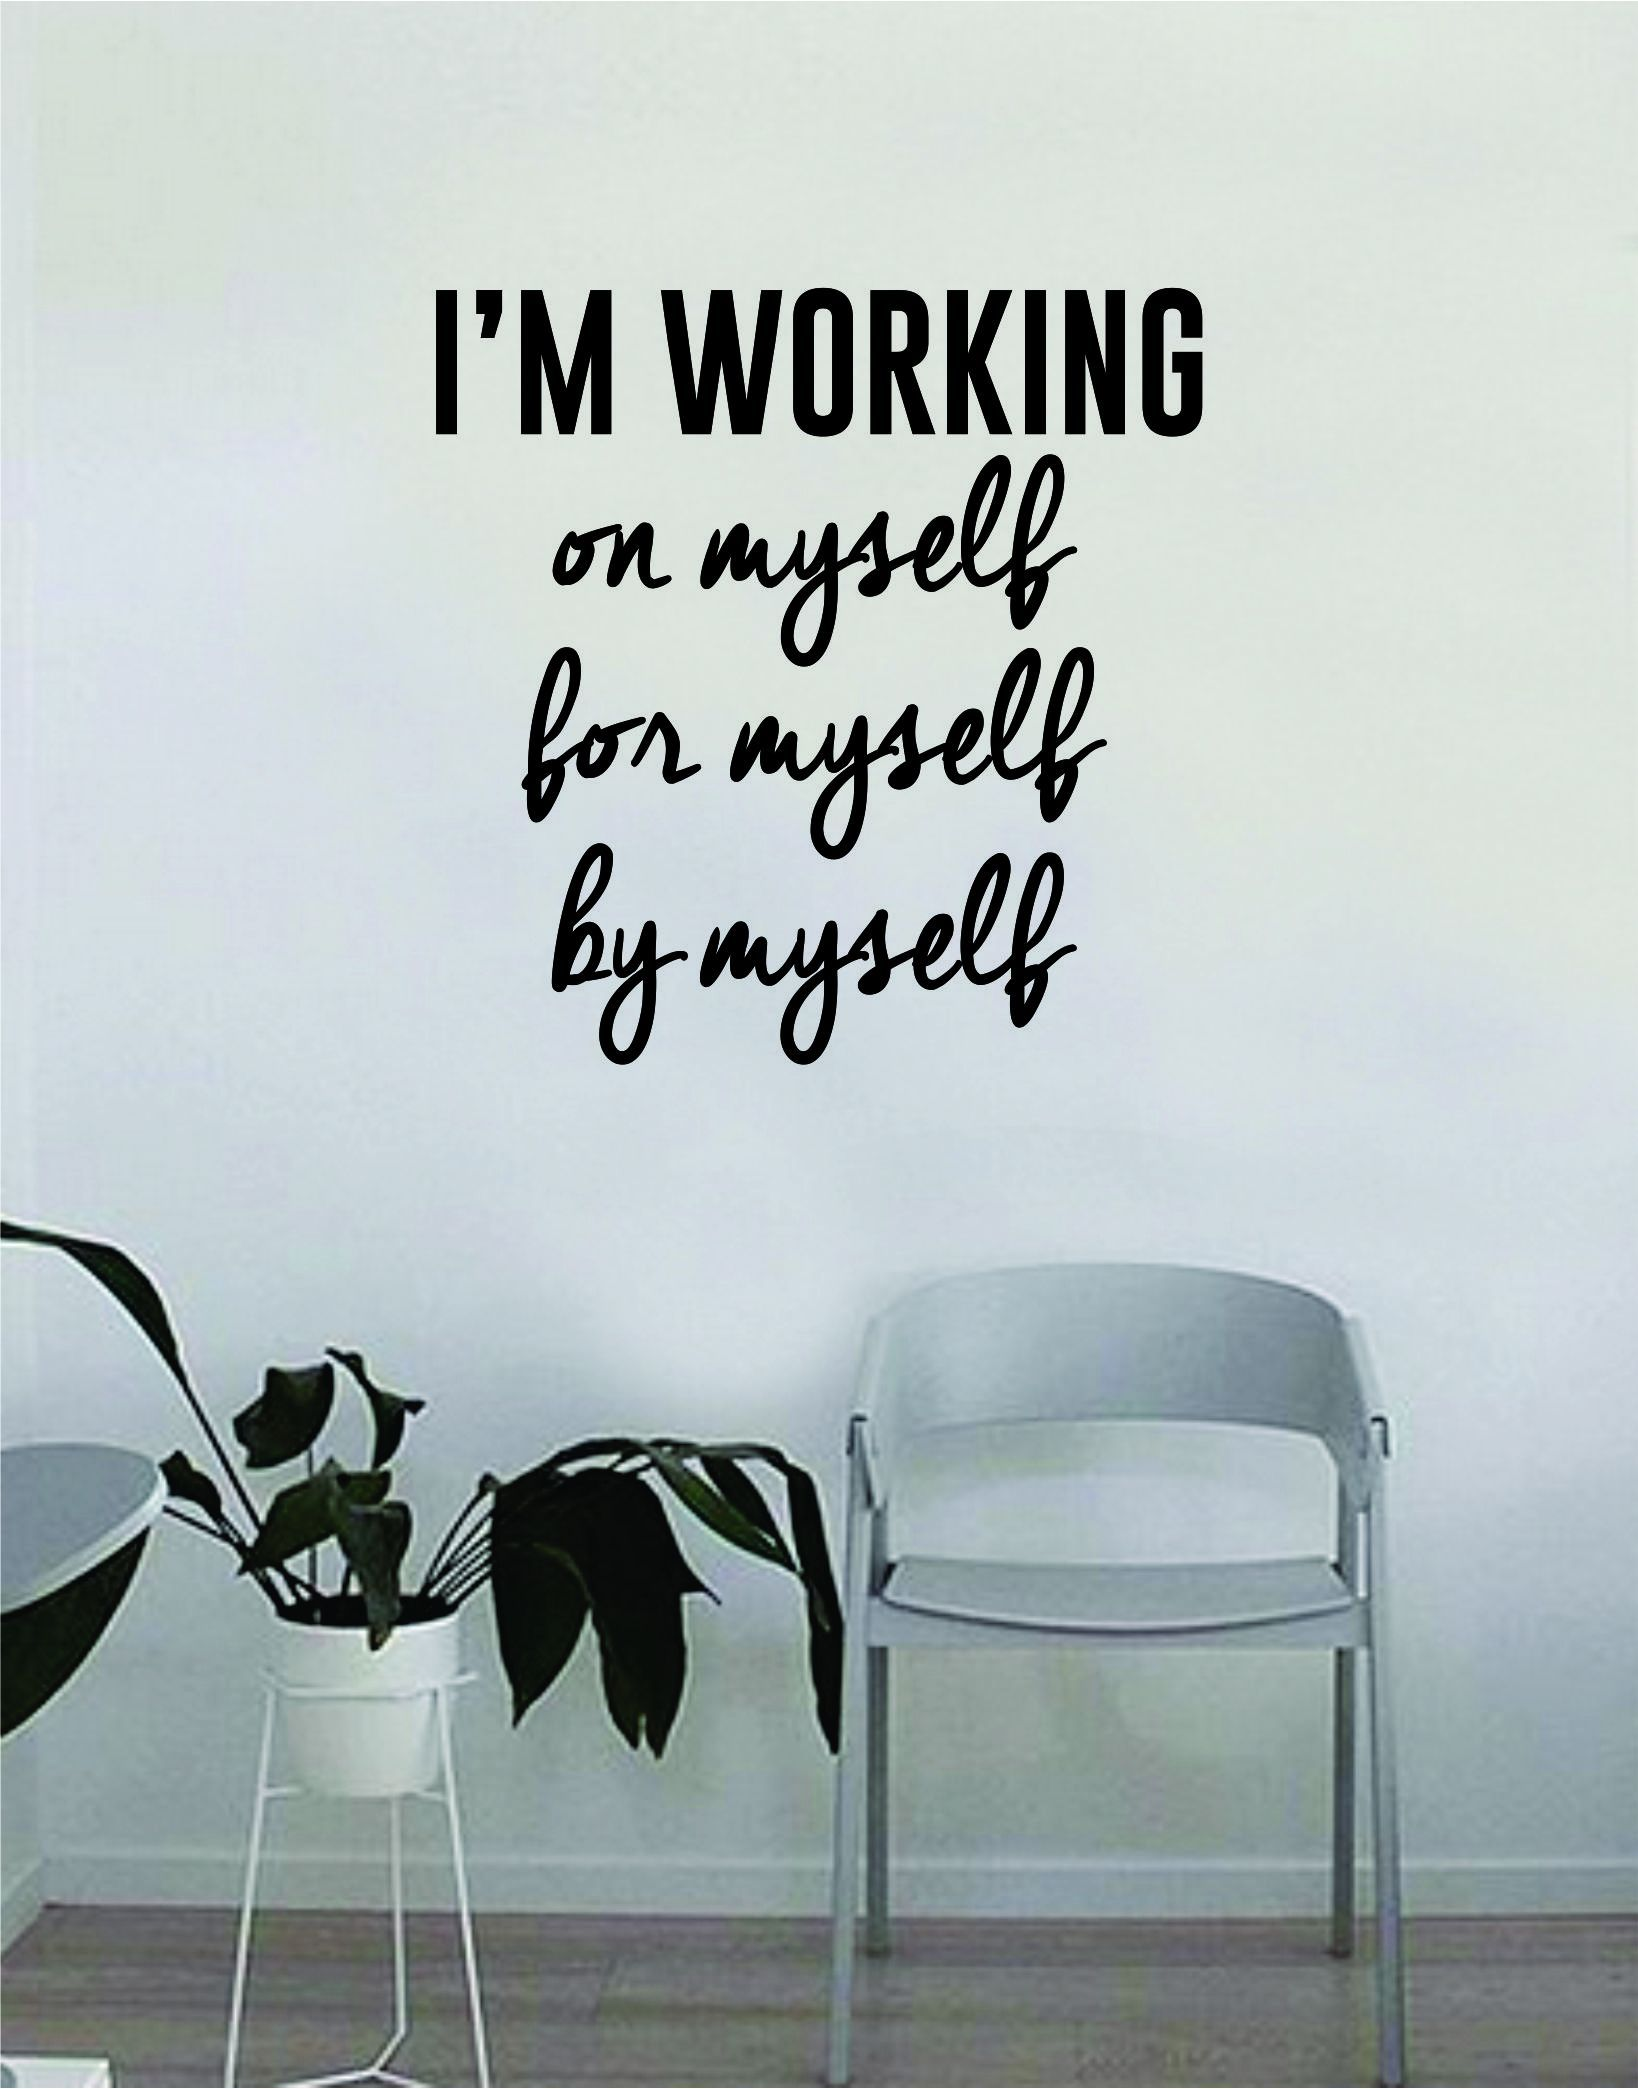 I'm Working On Myself For Myself By Myself Wall Decal Quote Home Room Decor Decoration Art Vinyl Sticker Inspirational Motivational Positive Good Vibes - red